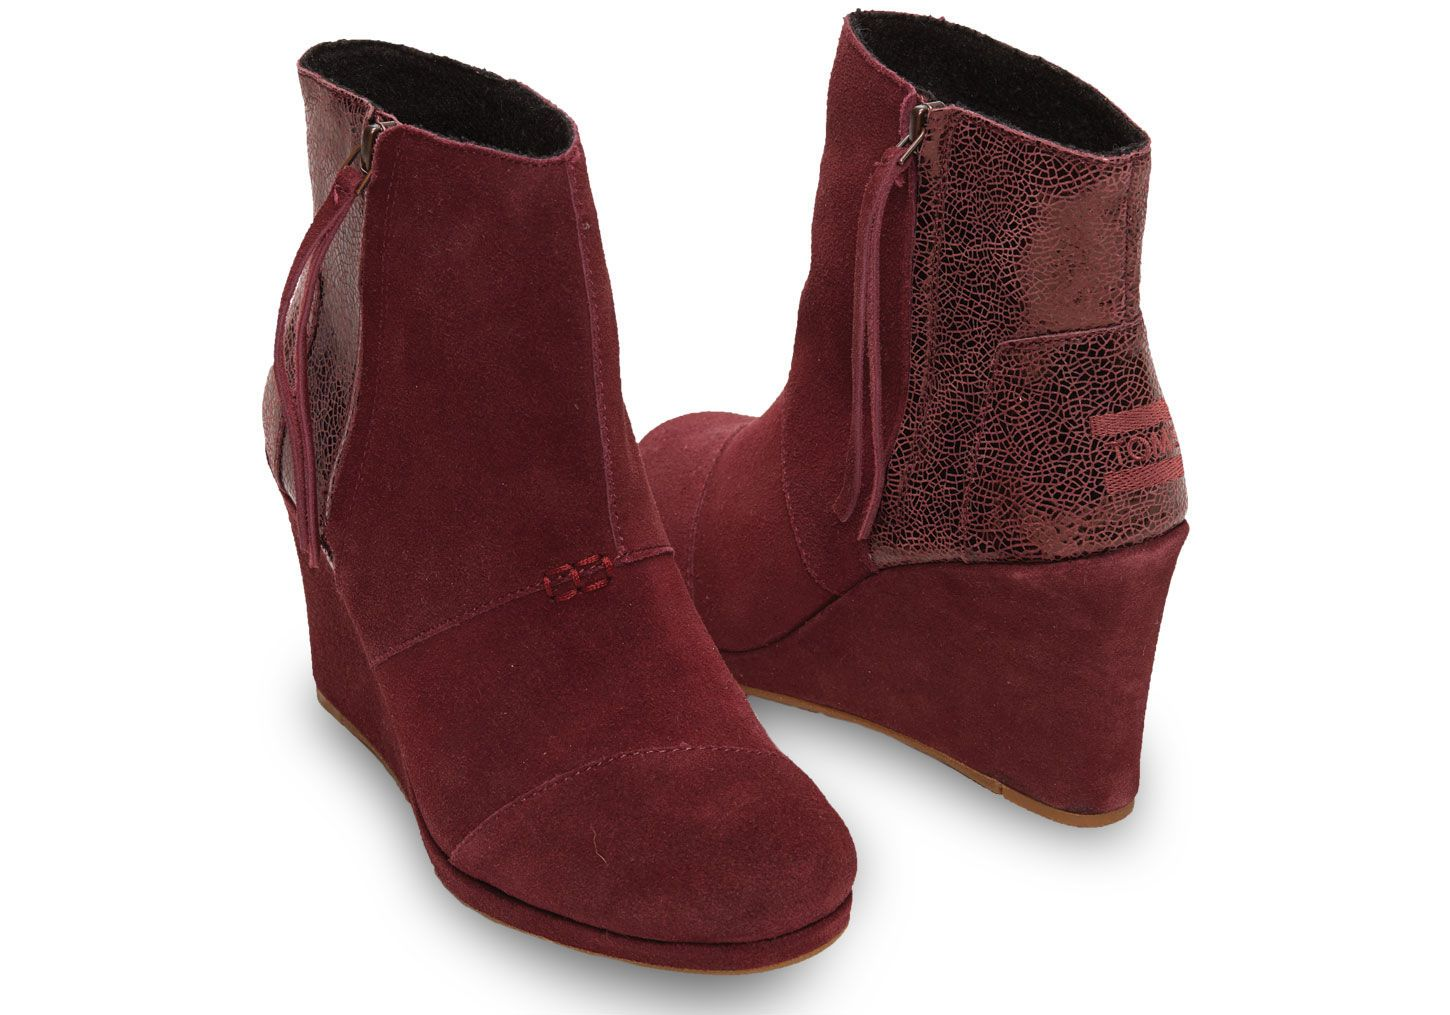 Wear TOMS Wine Crackled Leather Suede women's Desert Wedge Highs with an all-black outfit or pair with jeans and an oversized sweater for a festive outfit.